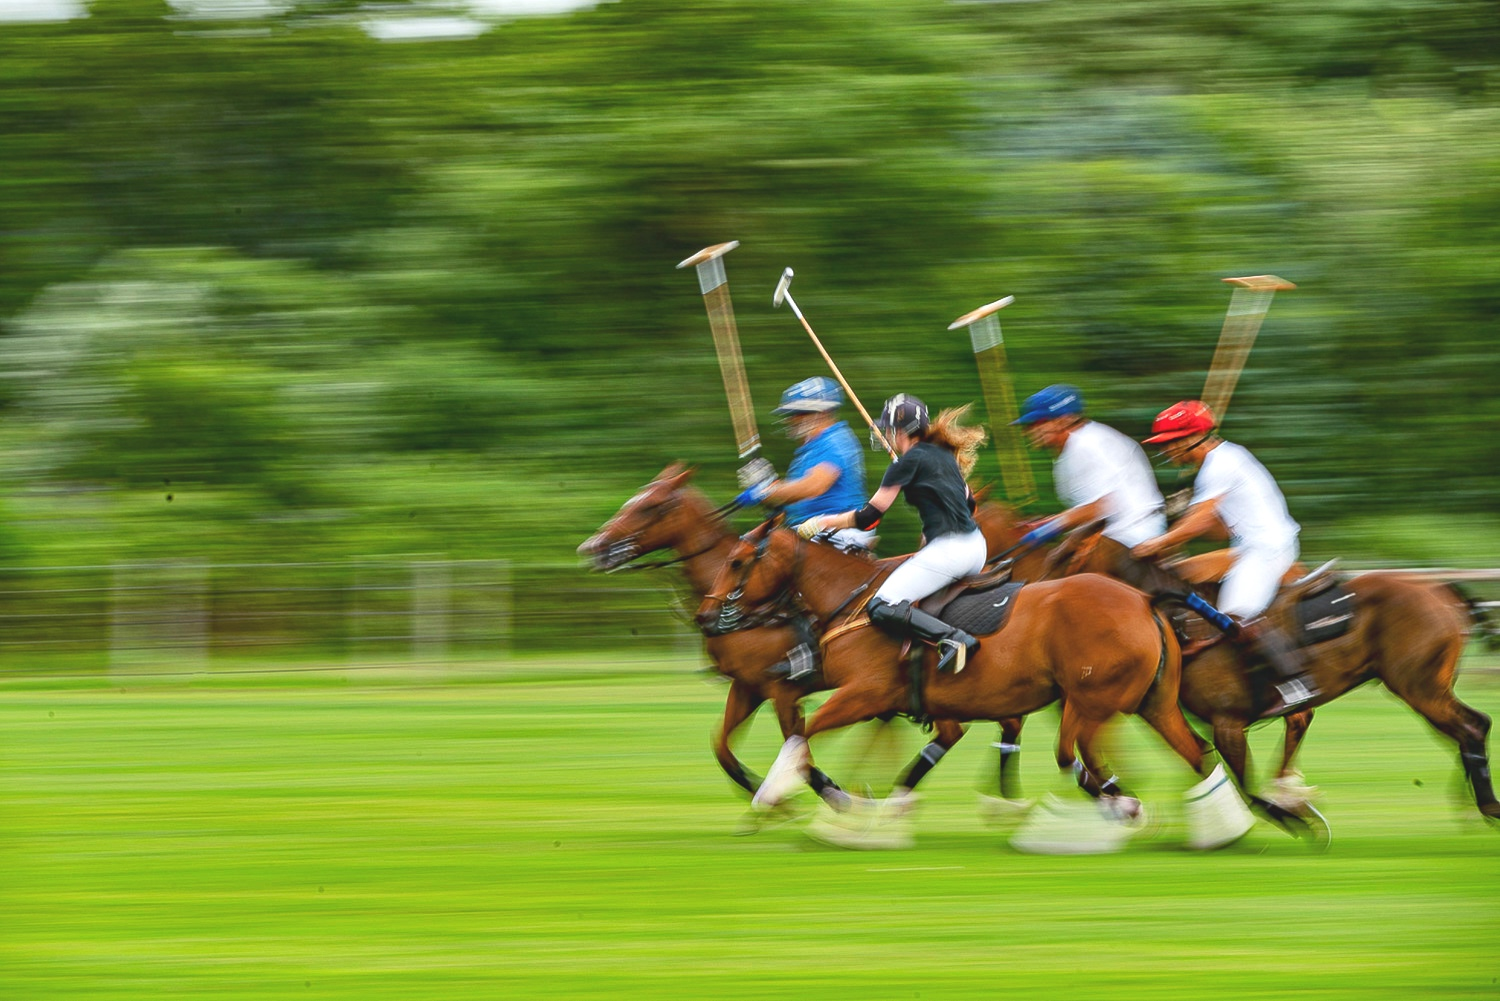 Photographs of the Fox Hunt in North Salem, NY and Polo